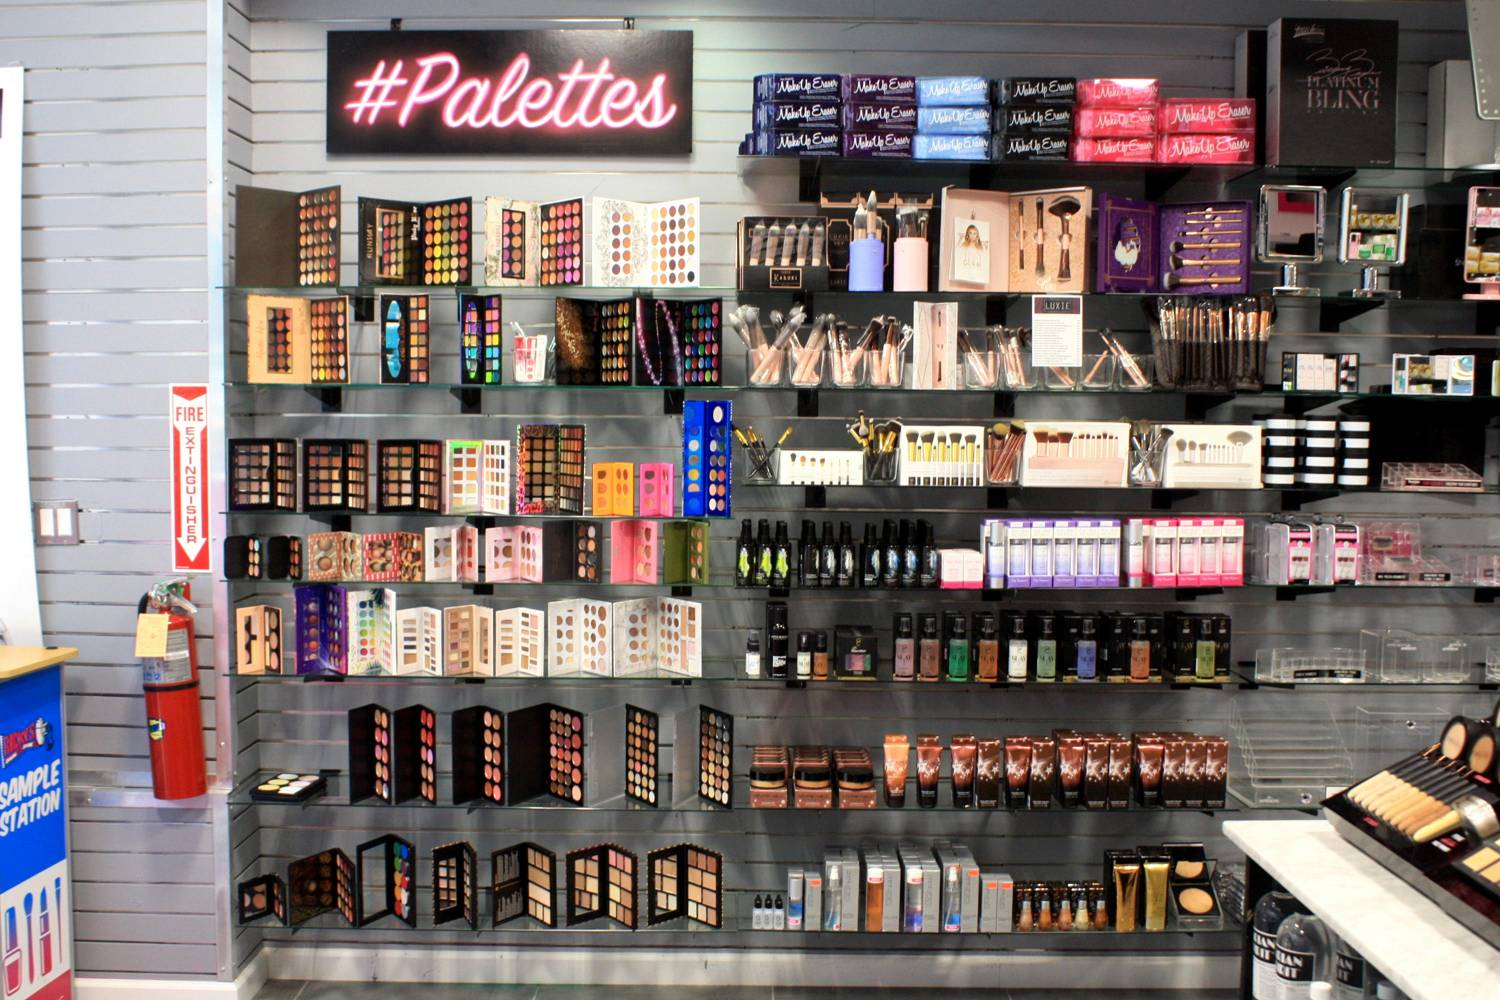 Ricky S Nyc Union Square Cosmetics And Beauty Store Nycgo